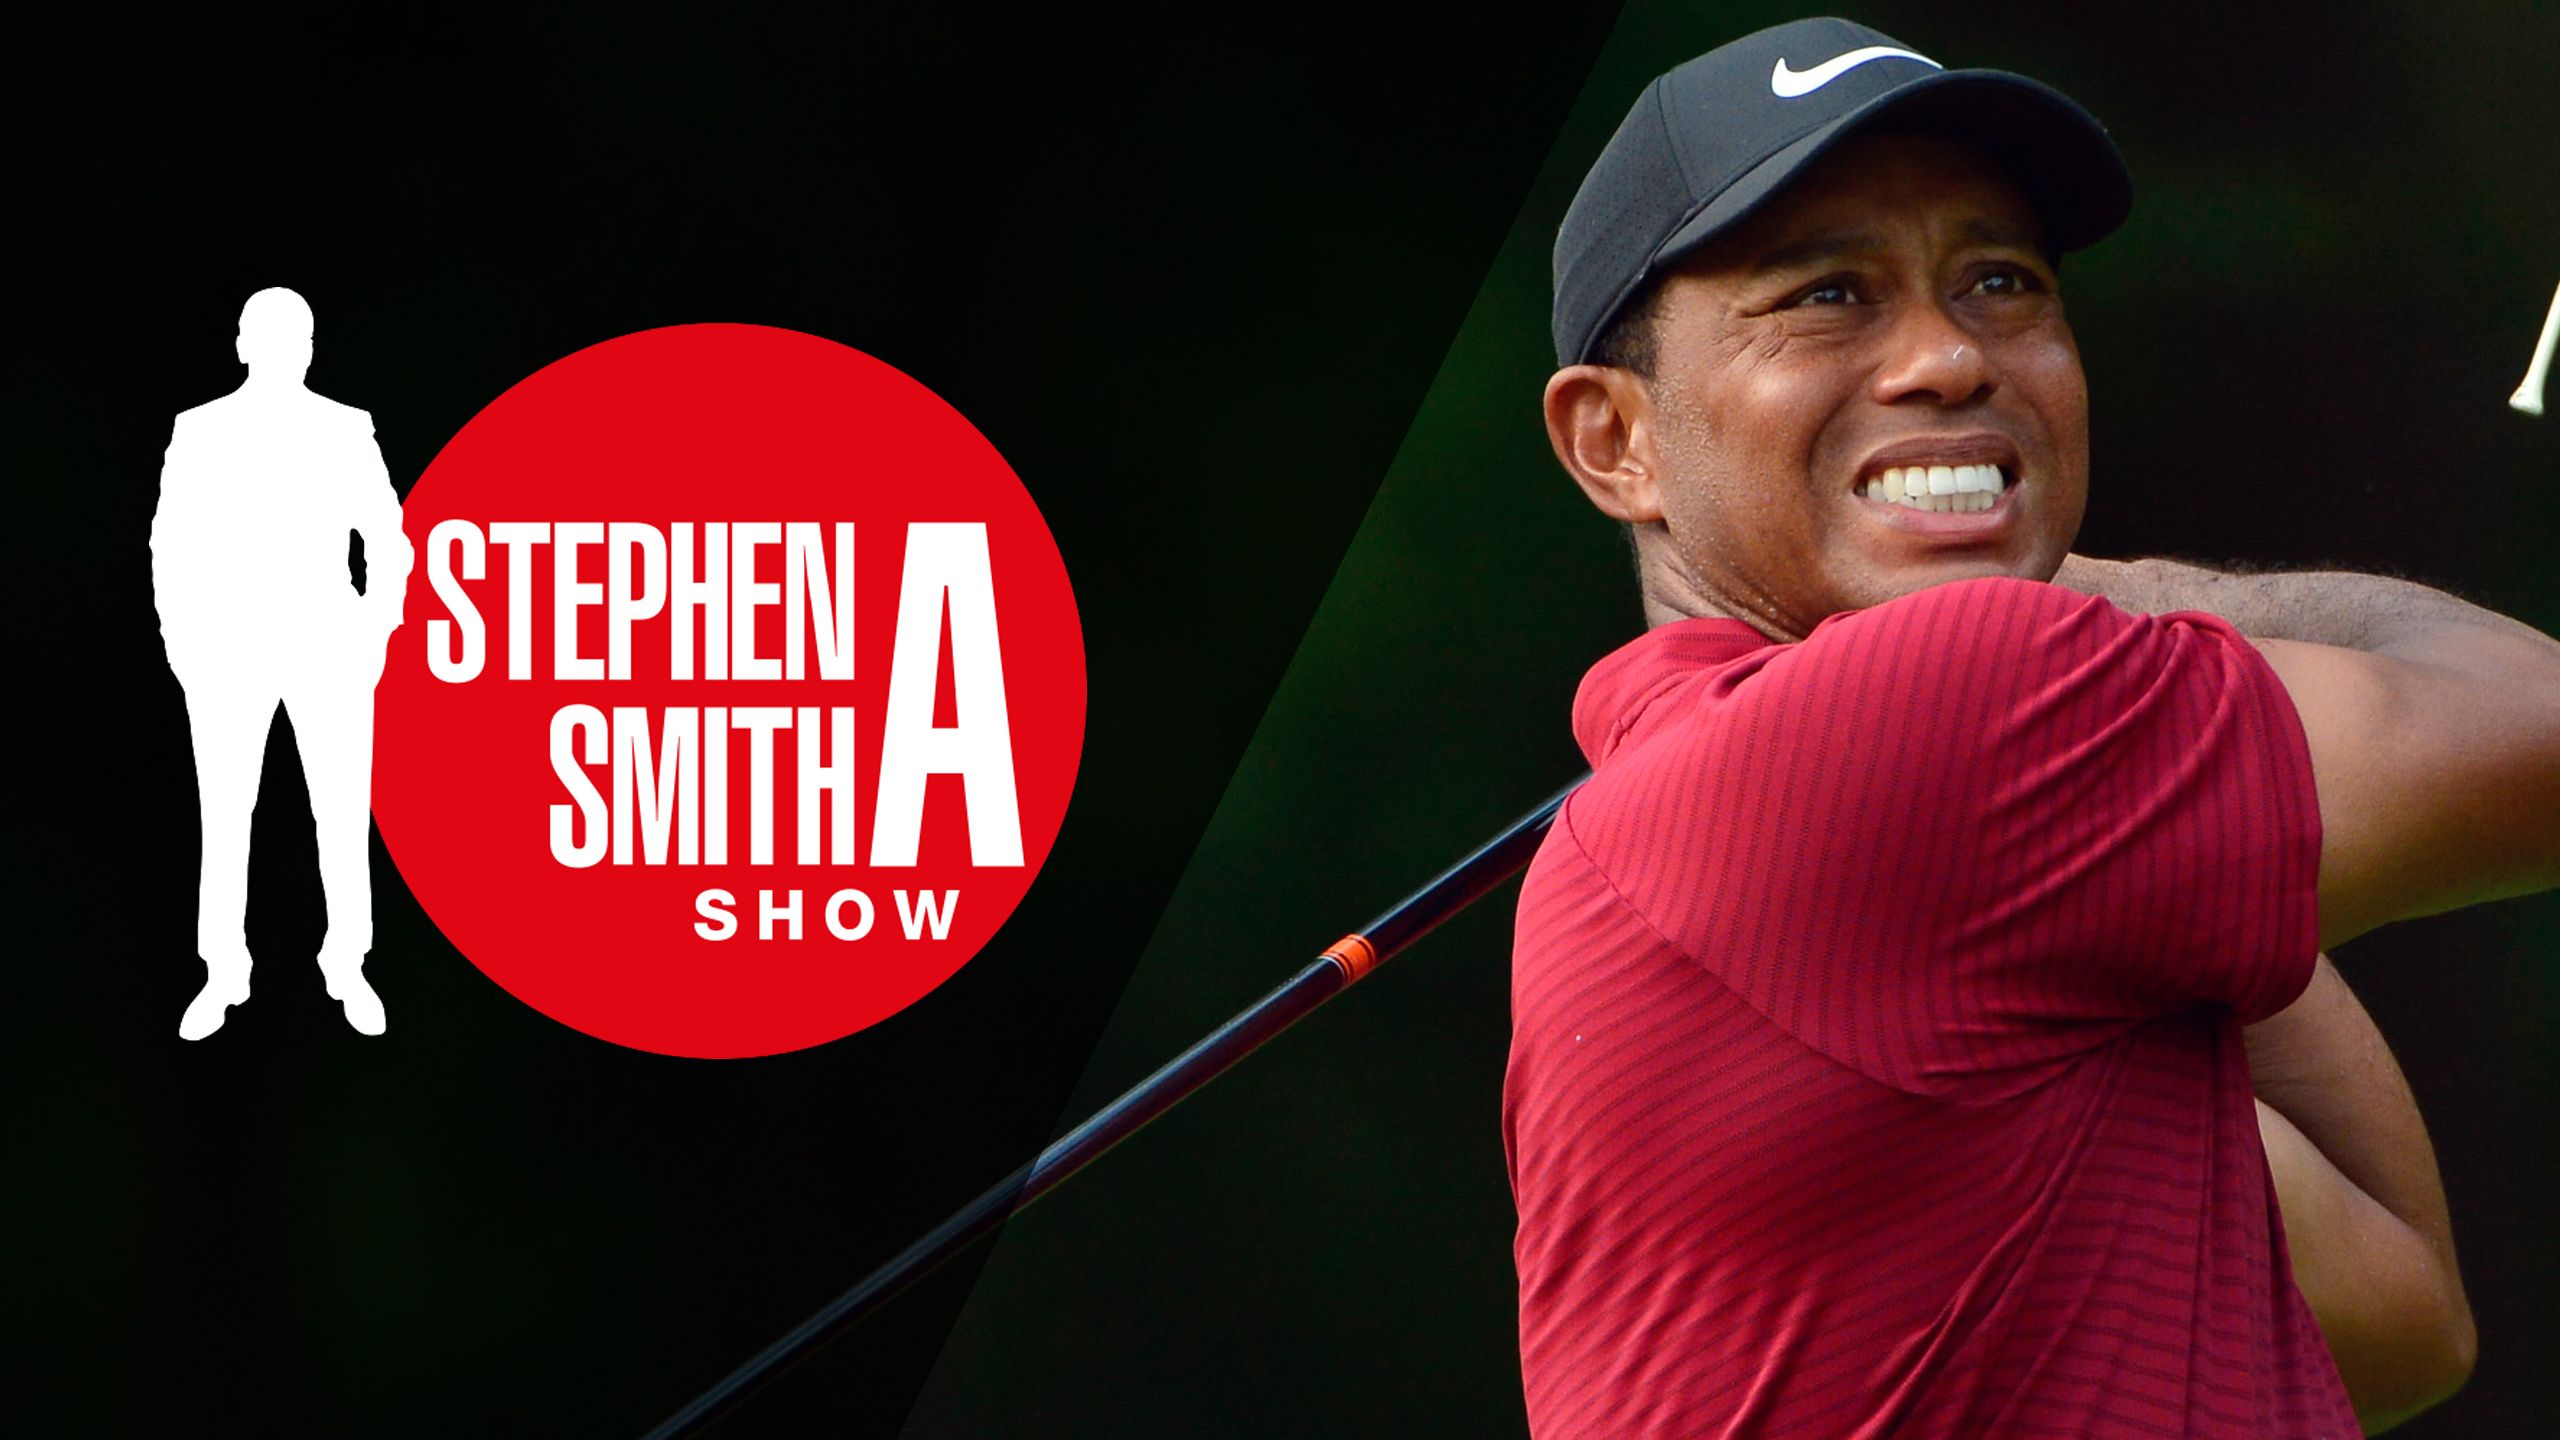 Mon, 8/13 - The Stephen A. Smith Show